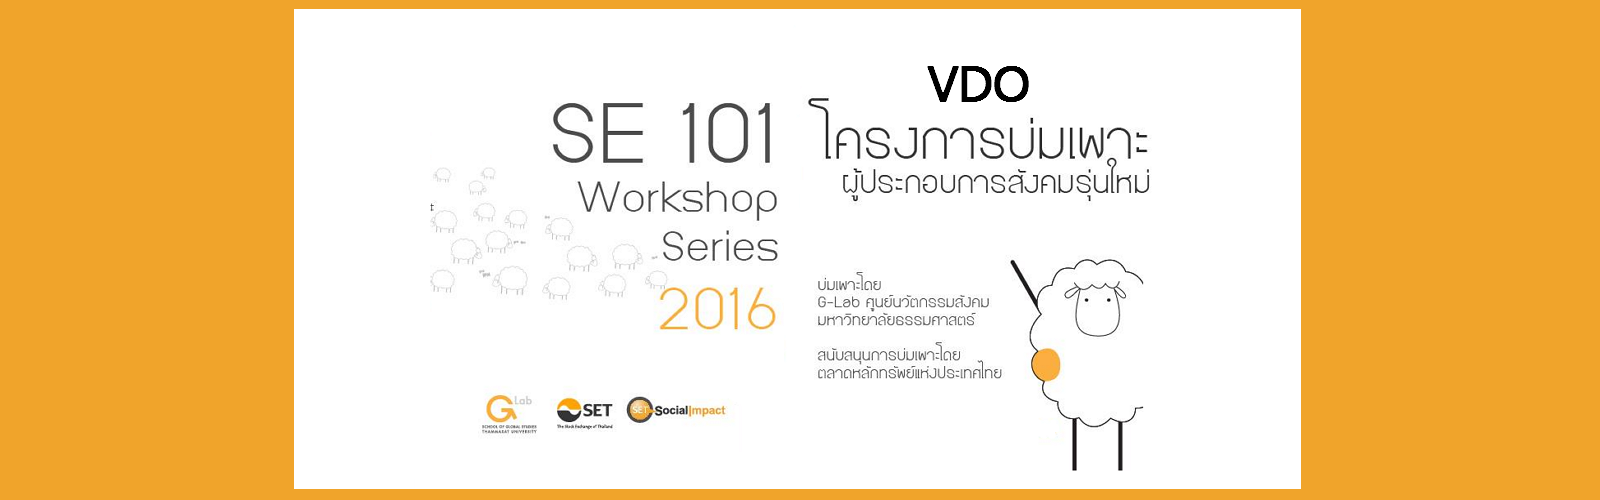 VDO SE101 Workshop Series 2016